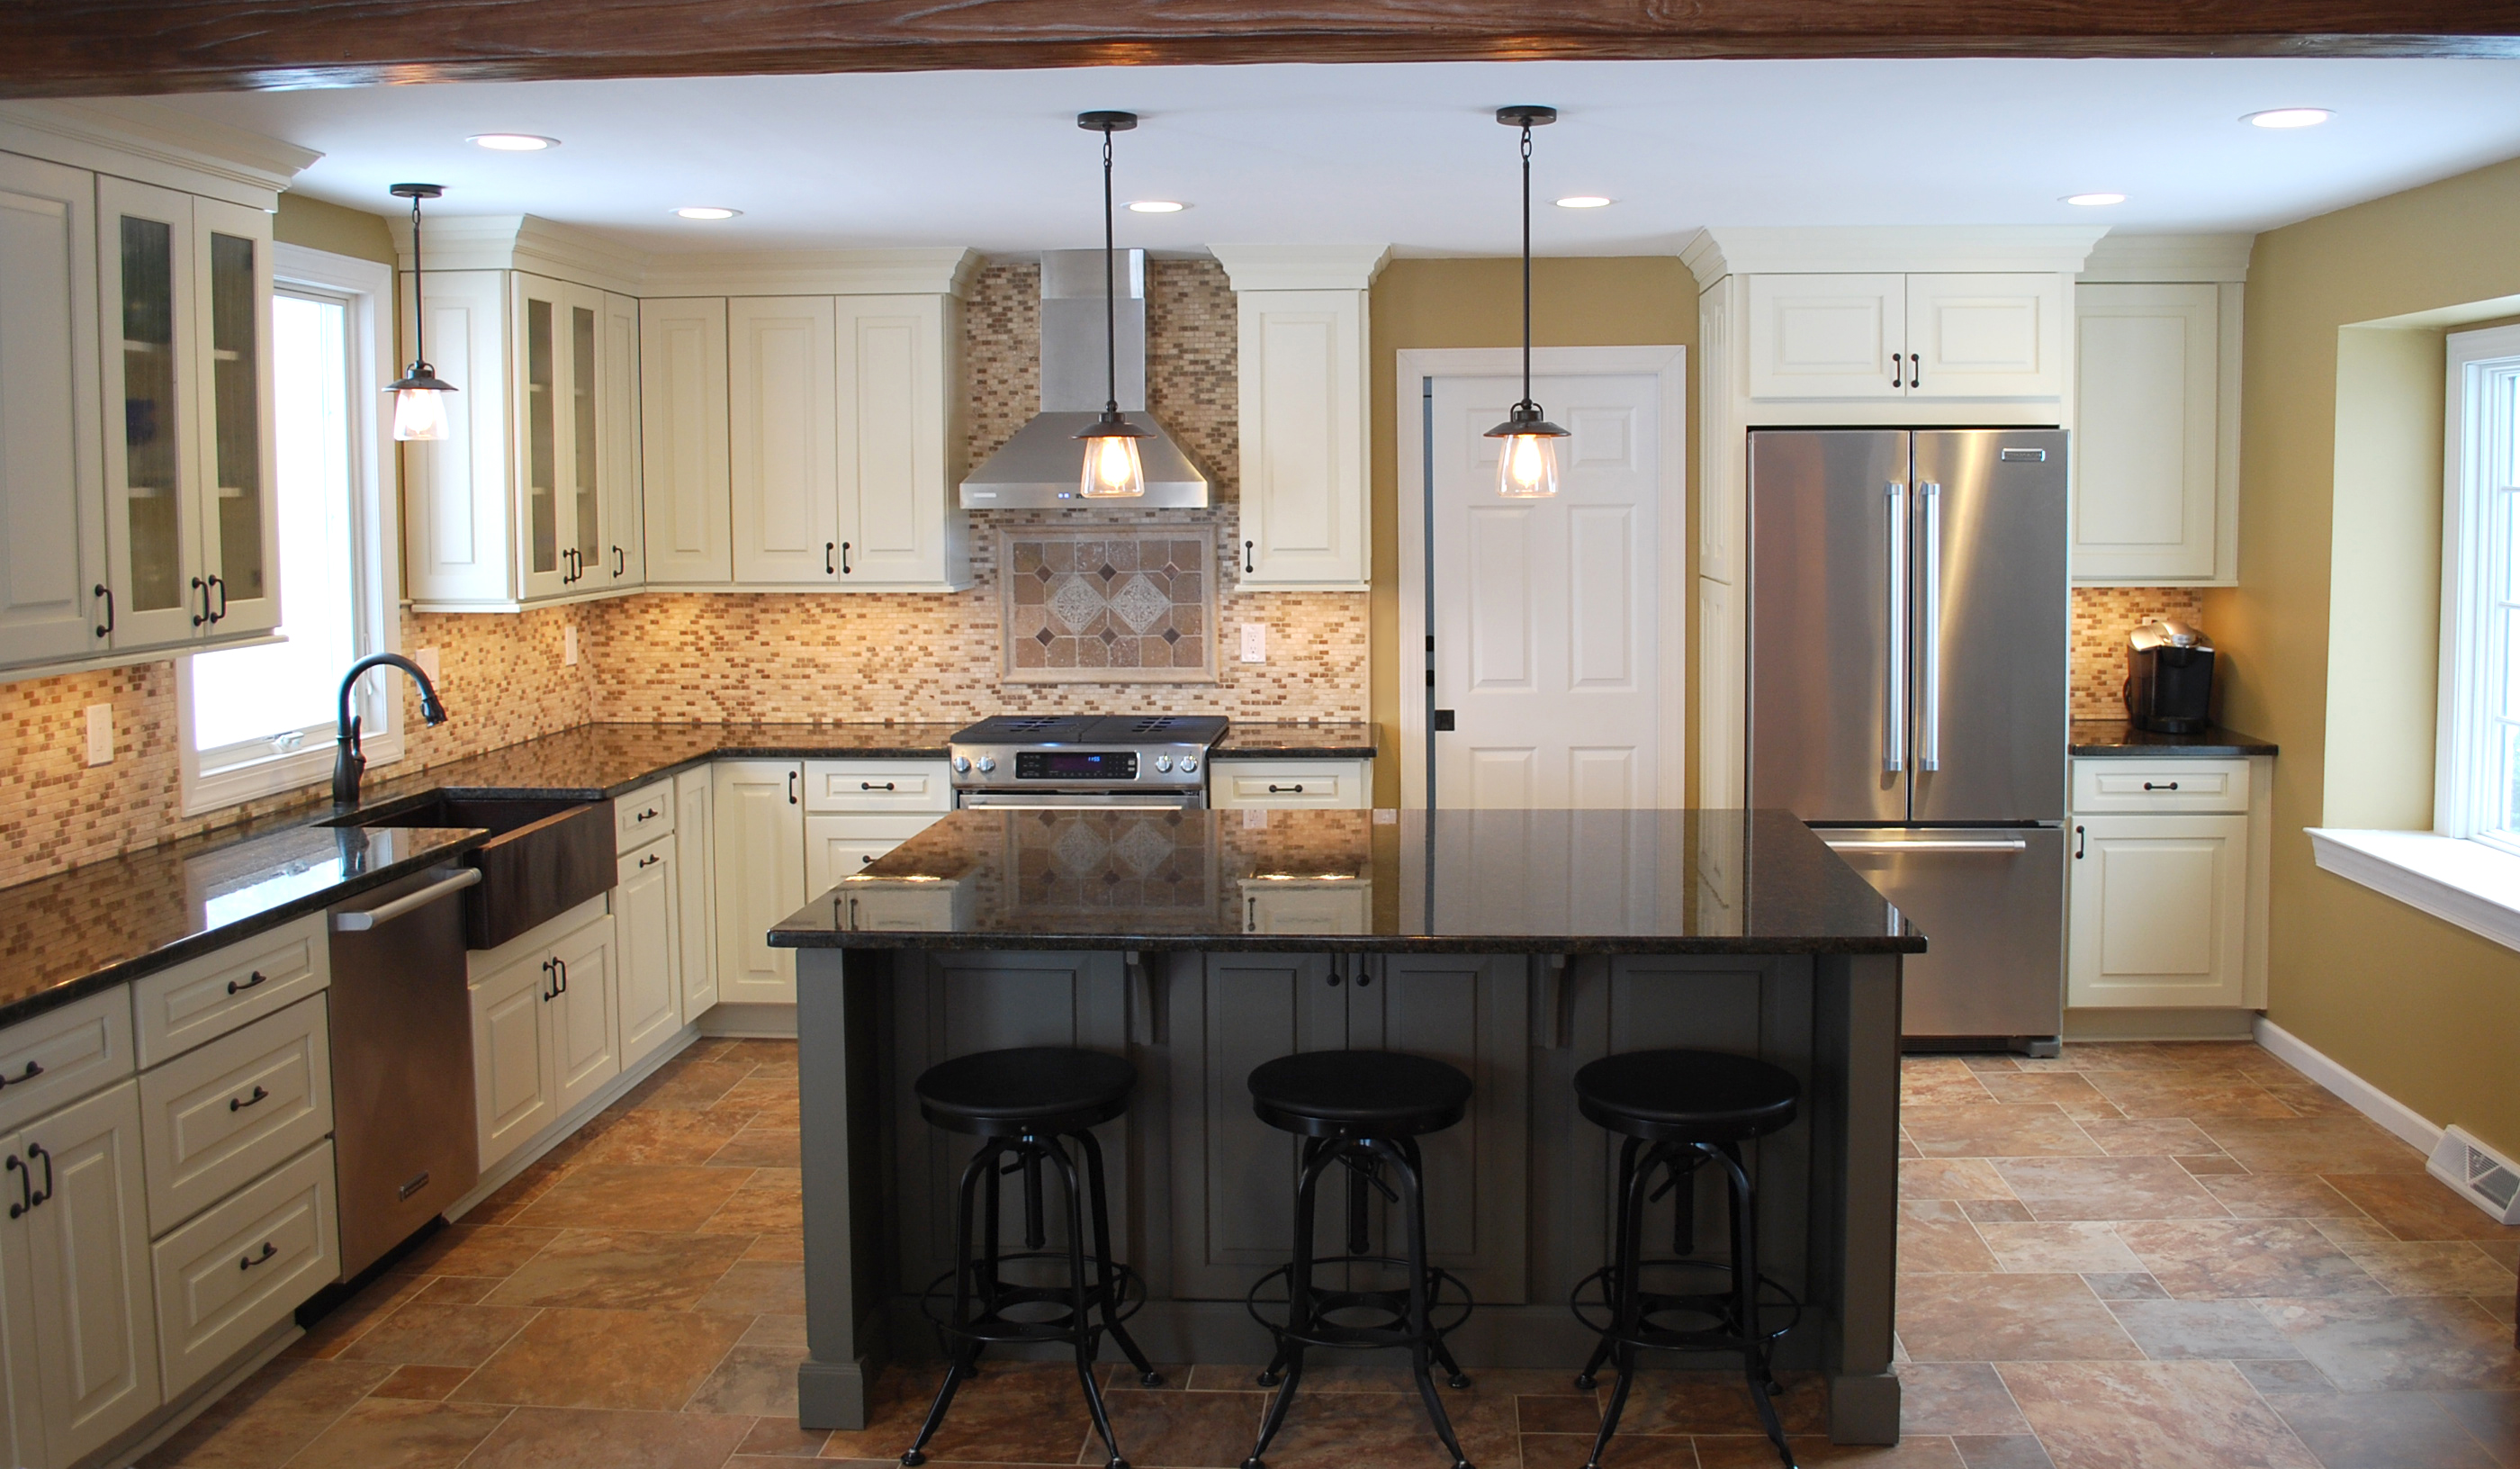 Replacing Kitchen Cabinets On A Budget Choosing Thе Right Cabinets Fоr A Kitchen Remodel K Cabinet